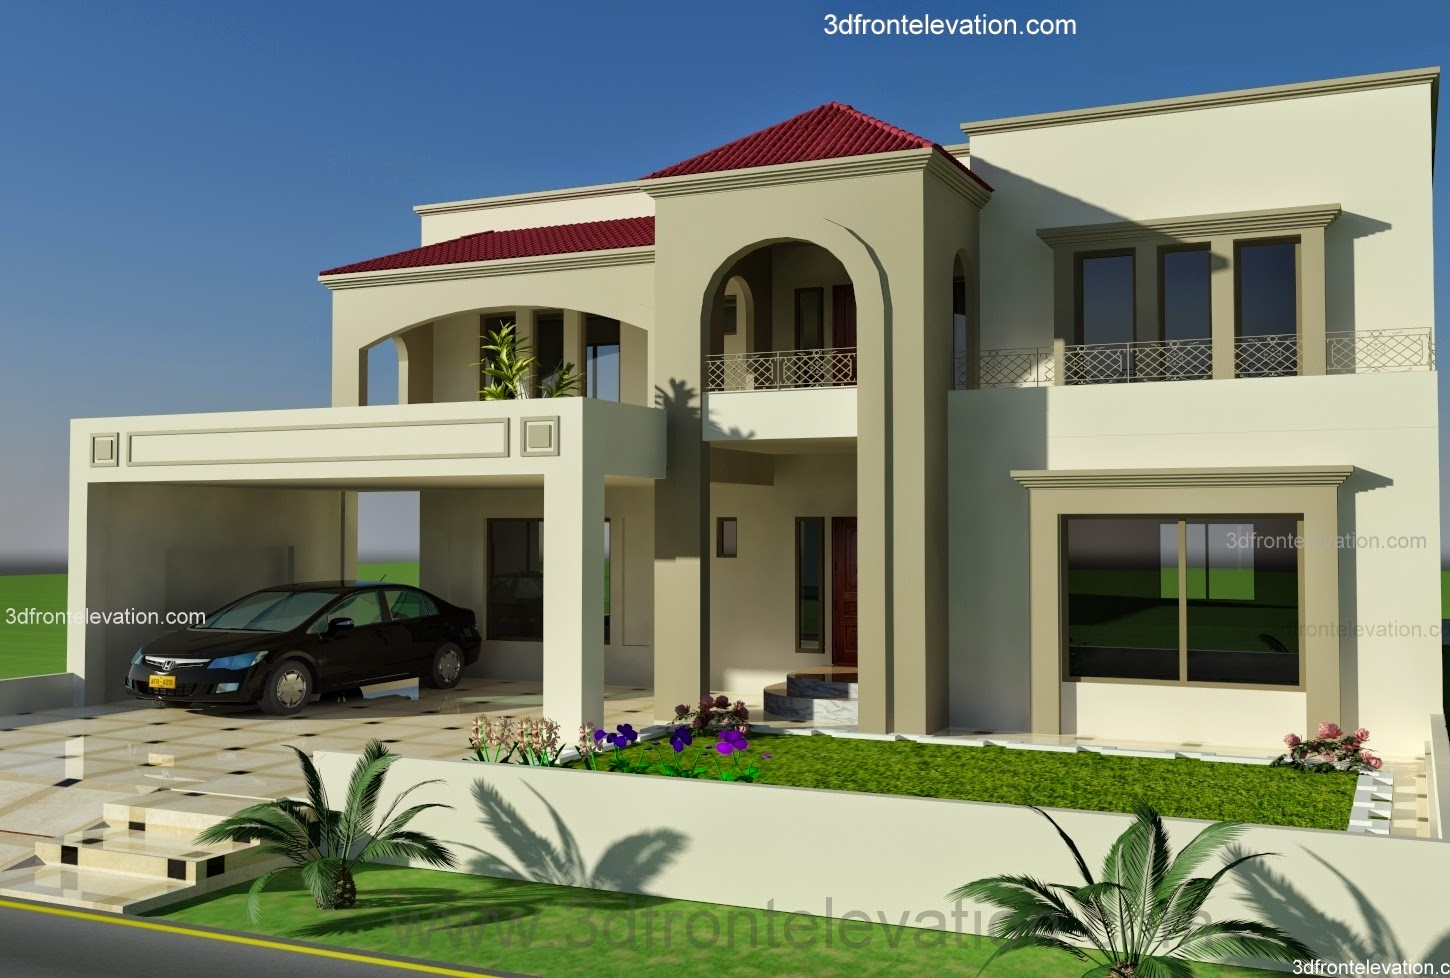 Architectural designs for house in pakistan joy studio for New home designs pictures in pakistan